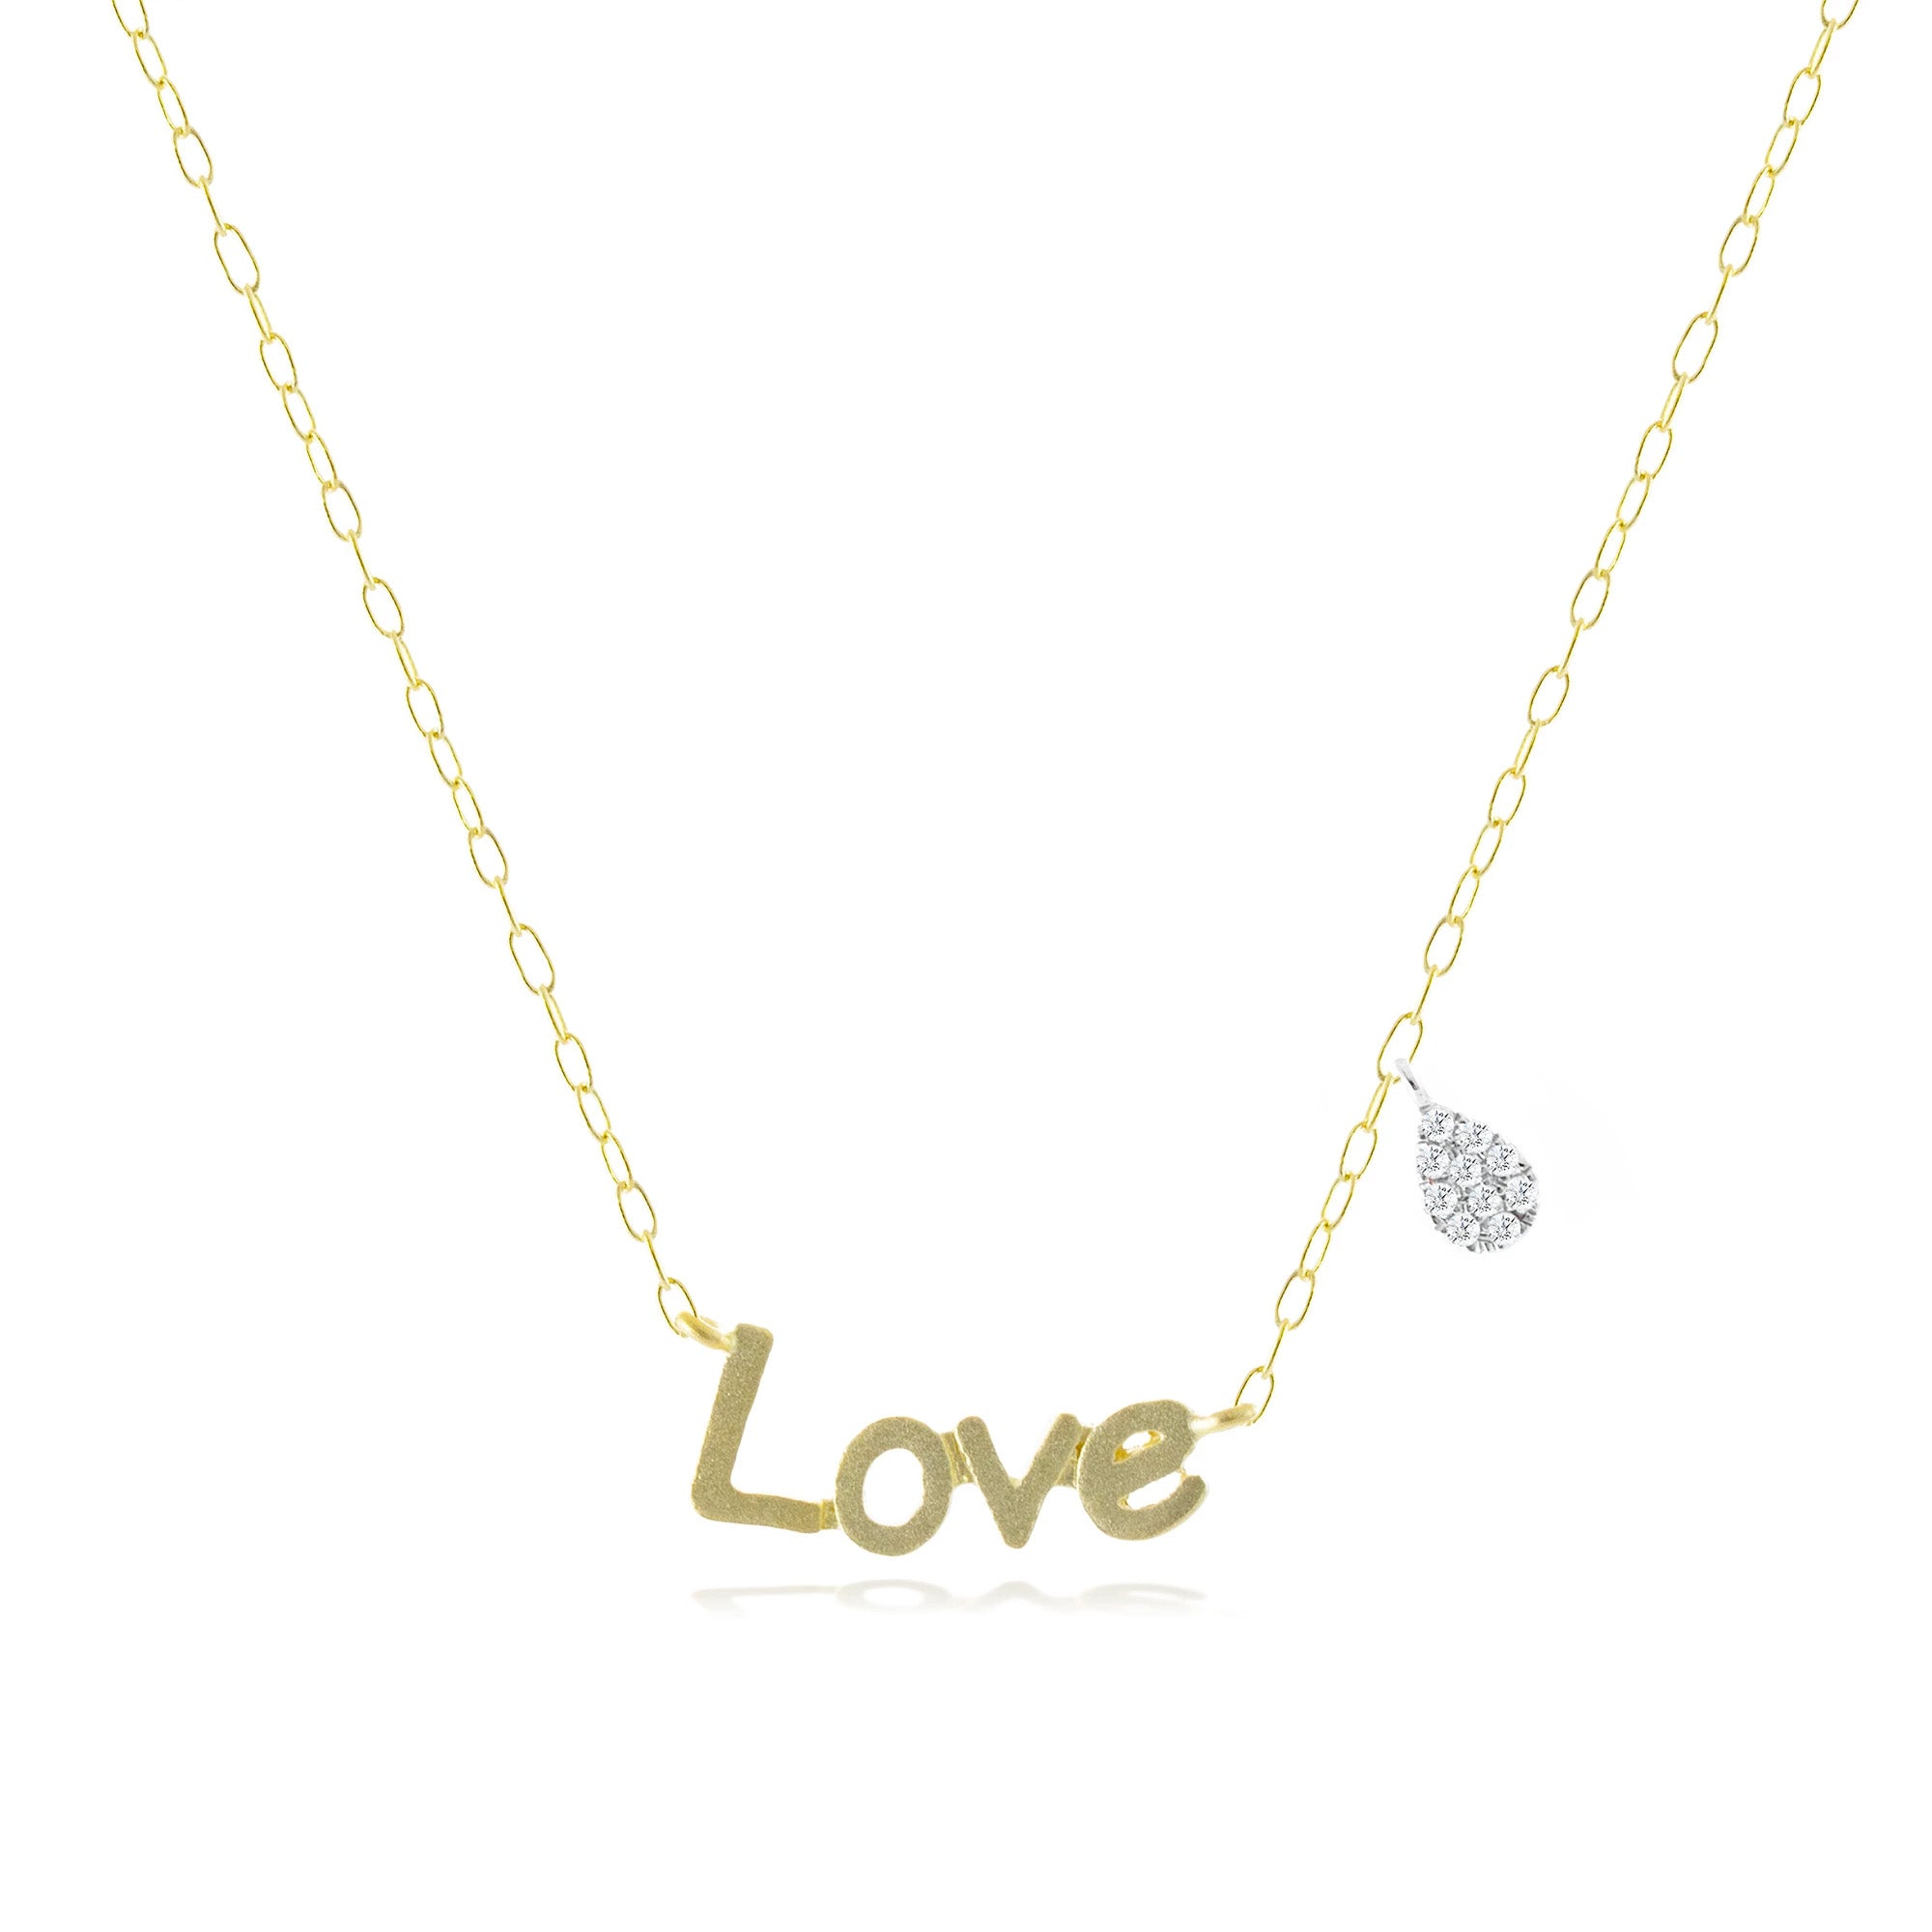 Love Light Chain Necklace